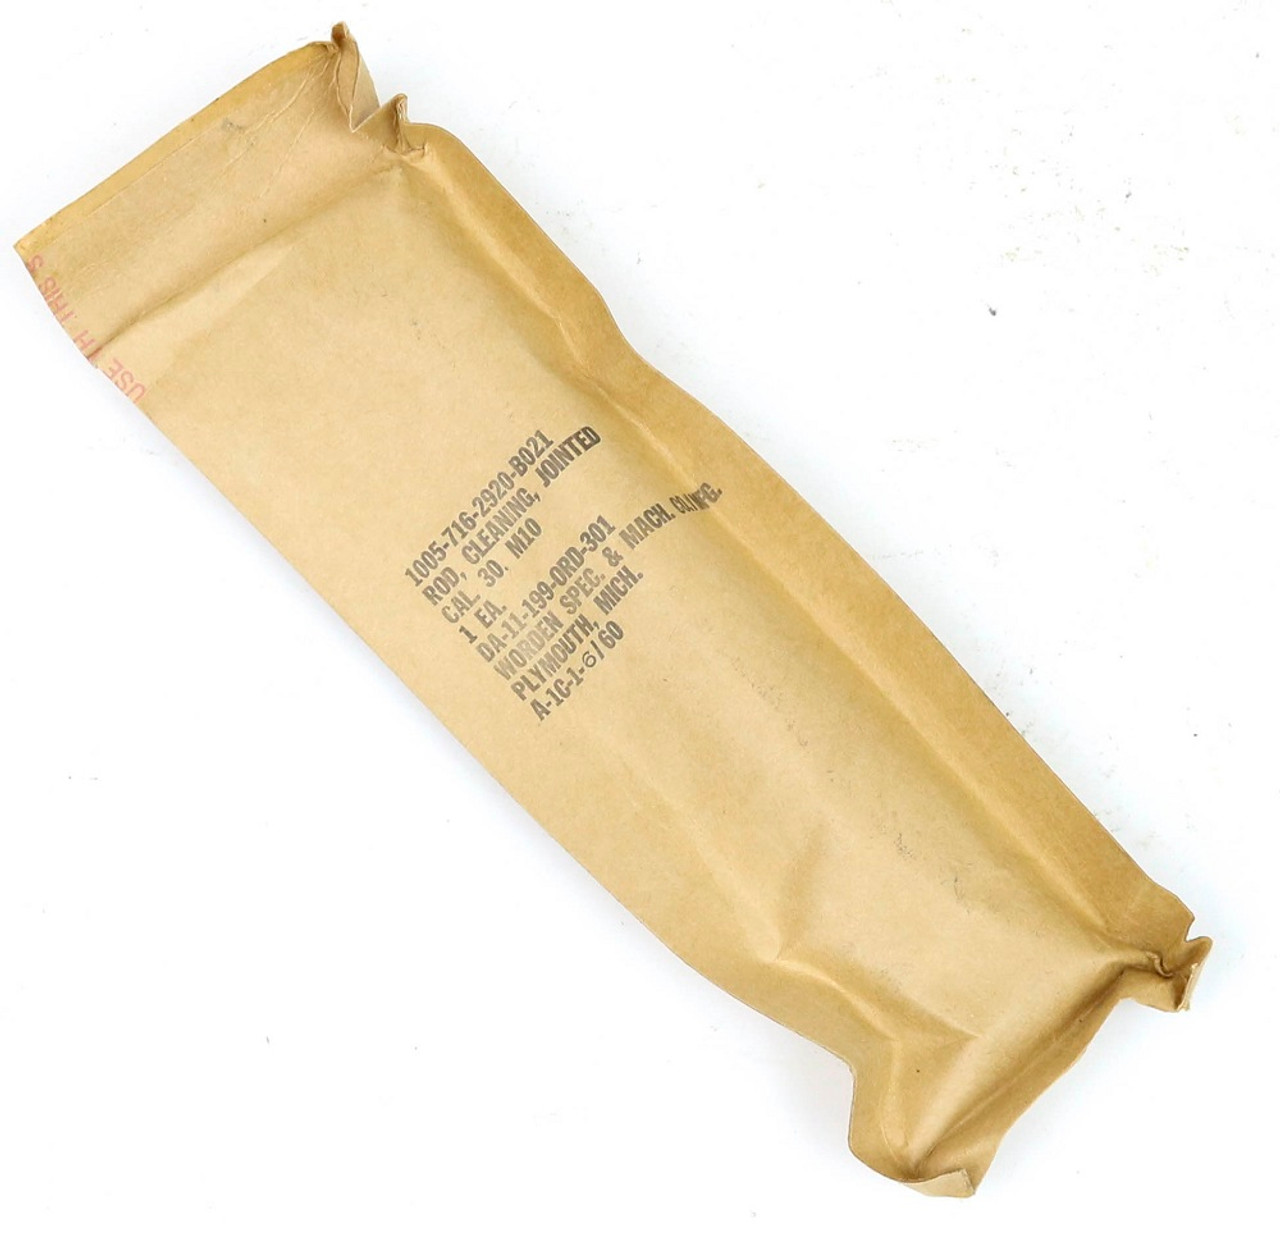 M1 Garand M10 Cleaning Rod, Complete SEALED in packing by Worden 1960 <br>UNISSUED New Old Stock (NOS)